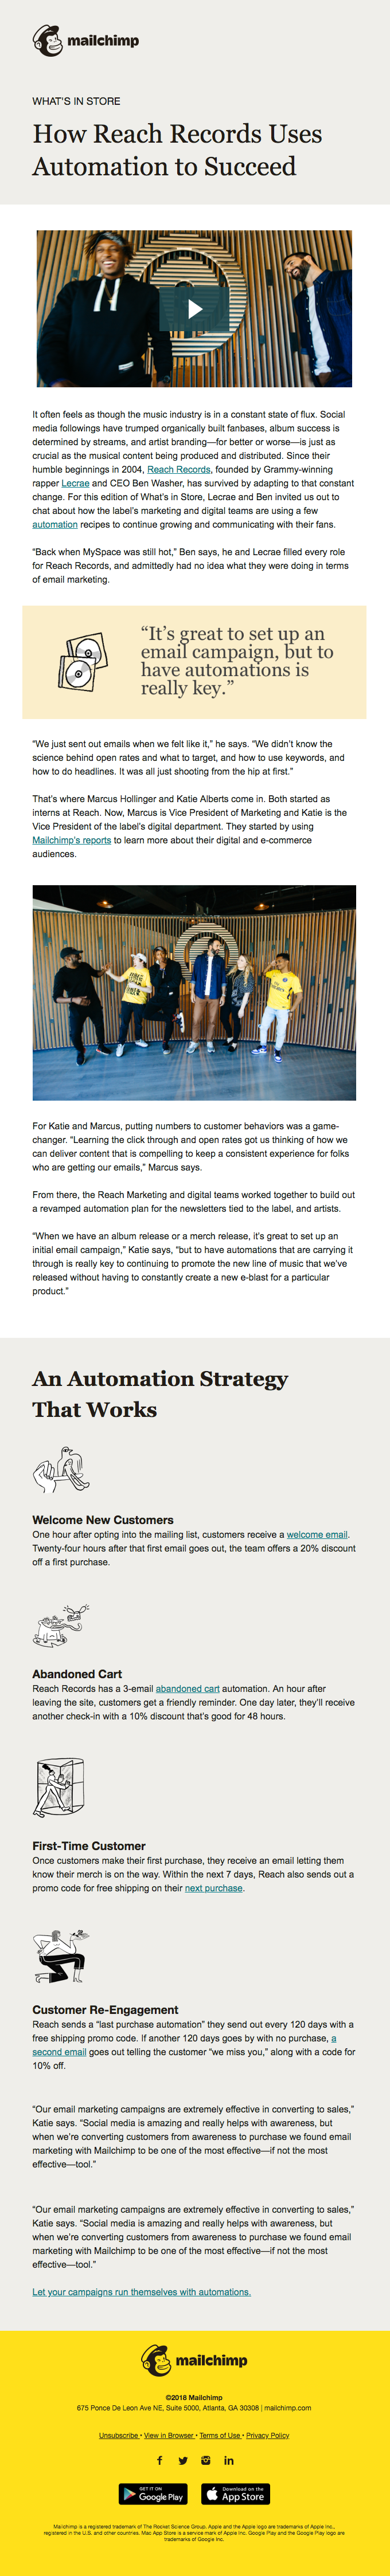 How Reach Records Uses Automation to Succeed